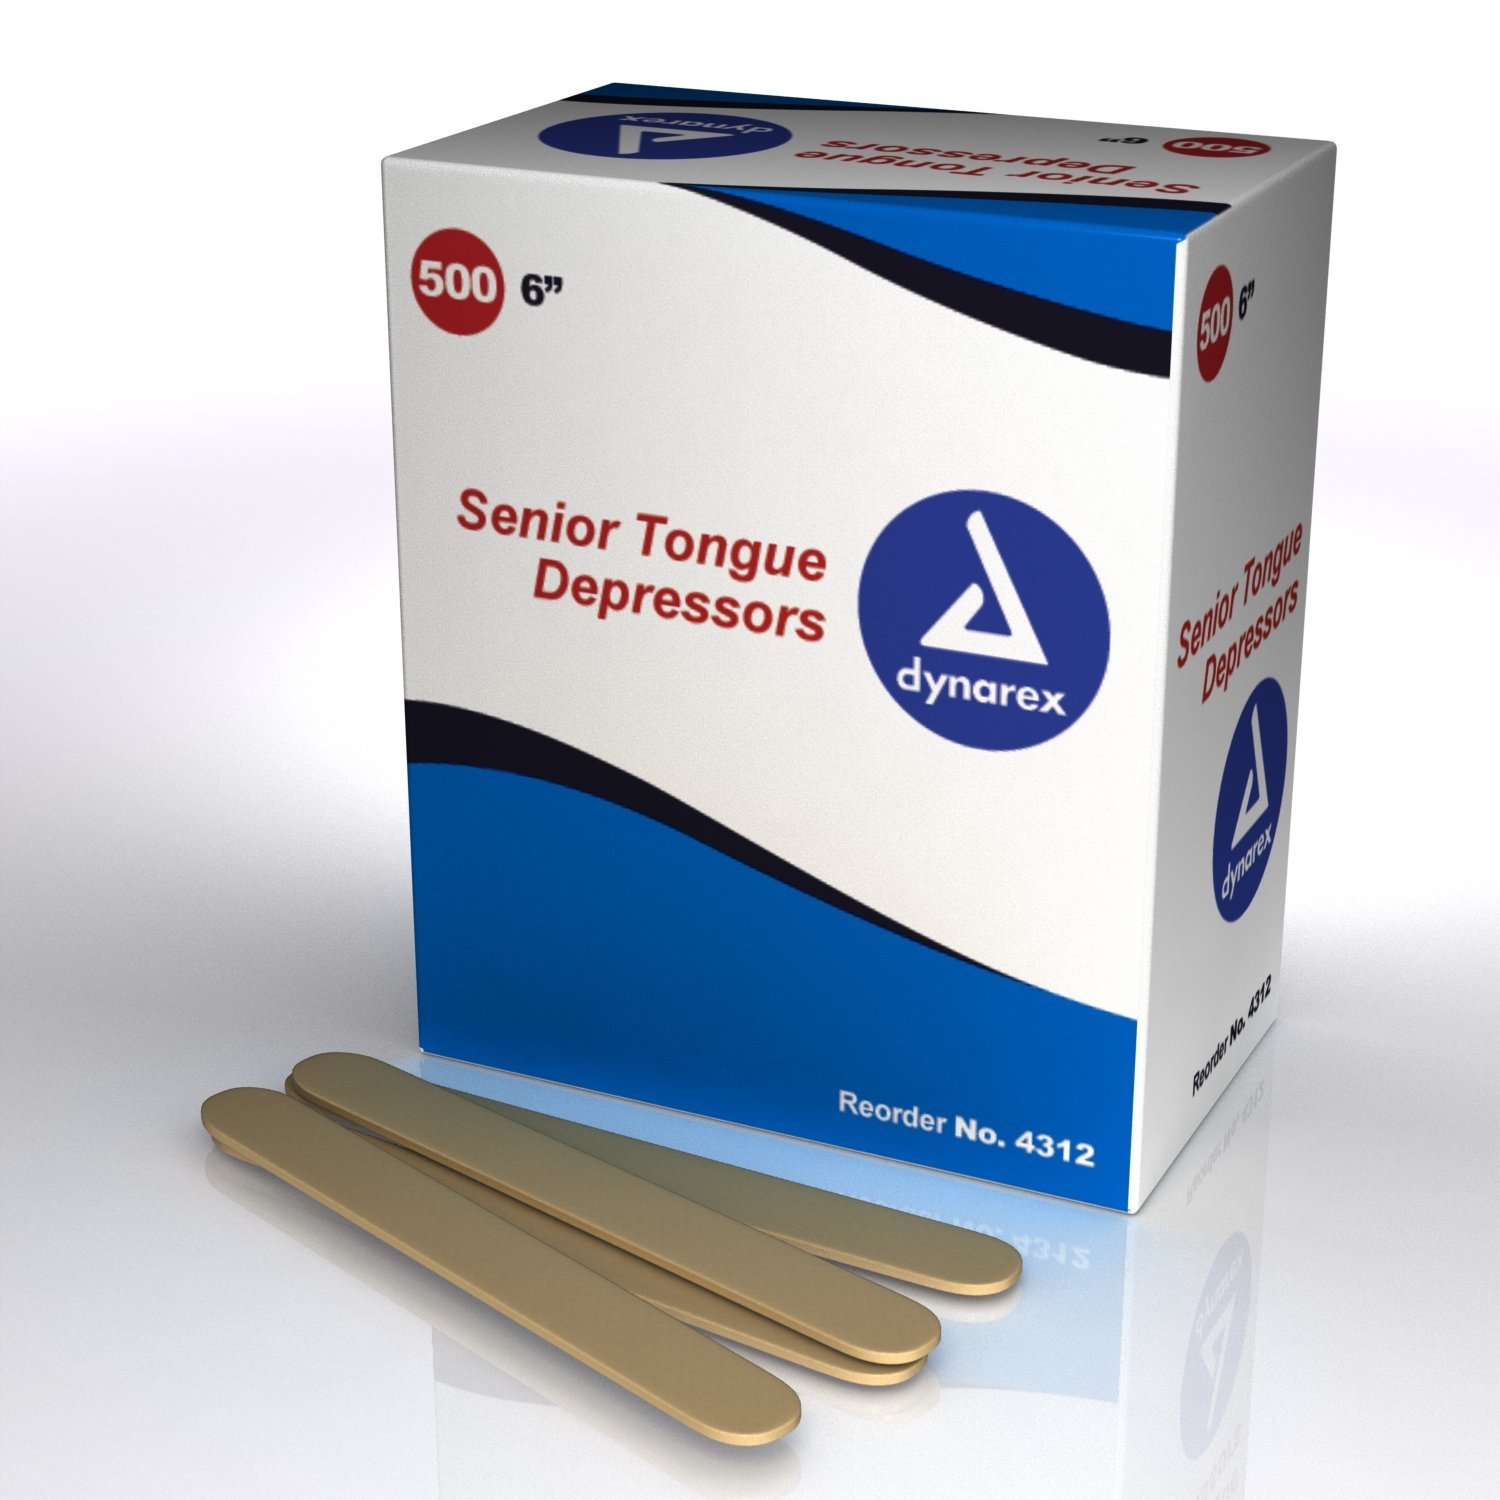 Senior Tongue Depressor Dynarex, 500 Count (Pack of 10)